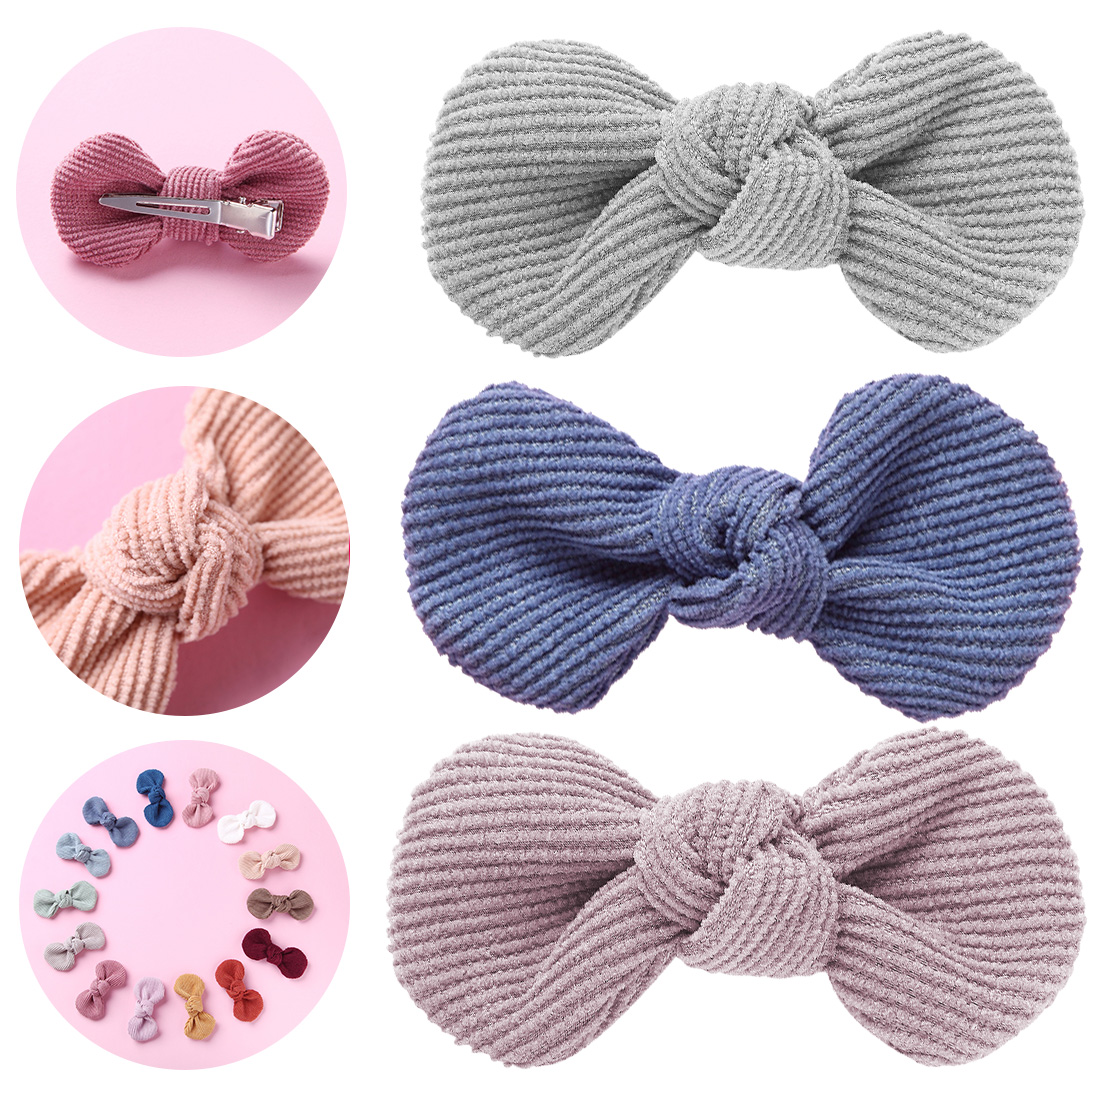 2019 Winter Corduroy BOW Hair Clip Or Headband, Hand Tied Bow Nylon Headbands, Baby Shower Gift, Girls Hair Accessories